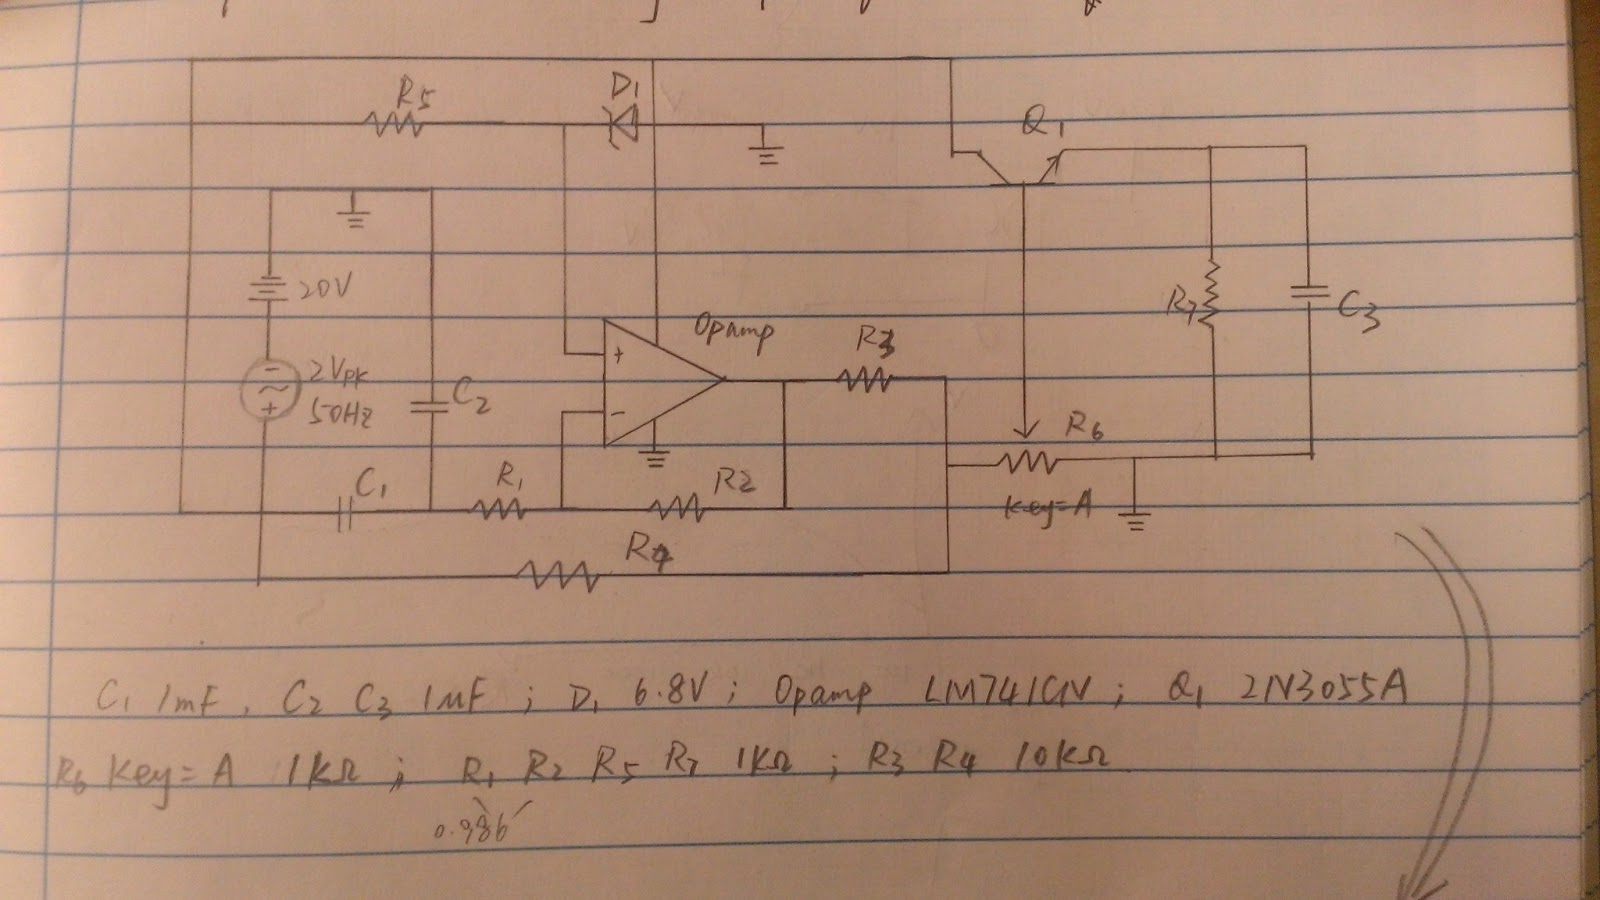 Inverting Amplifier Circuit Diagram Using Bootstrap Circuit Is Shown